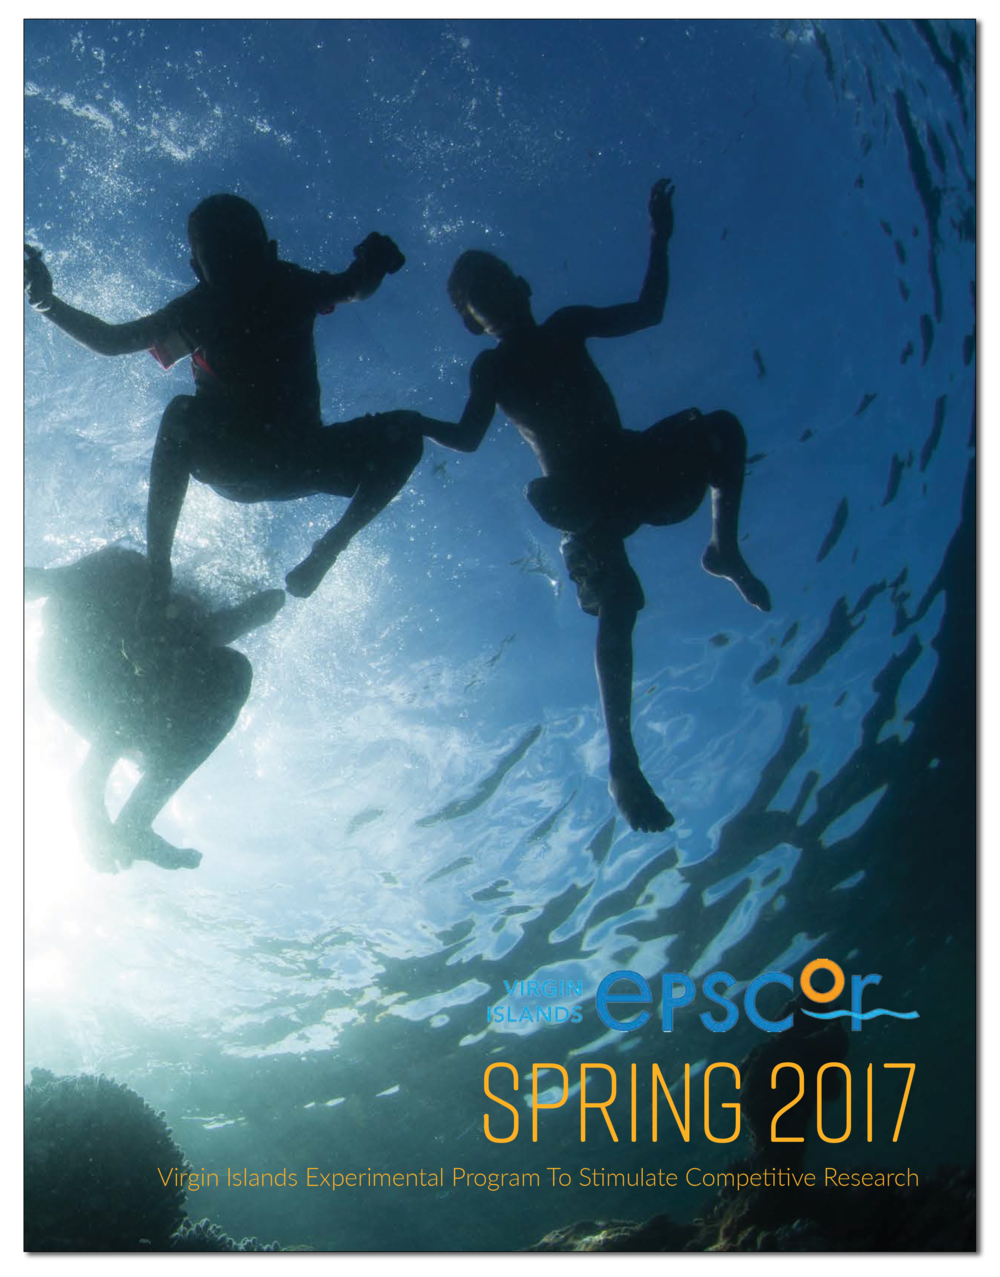 VI-EPSCoR Spring 2017 Issue